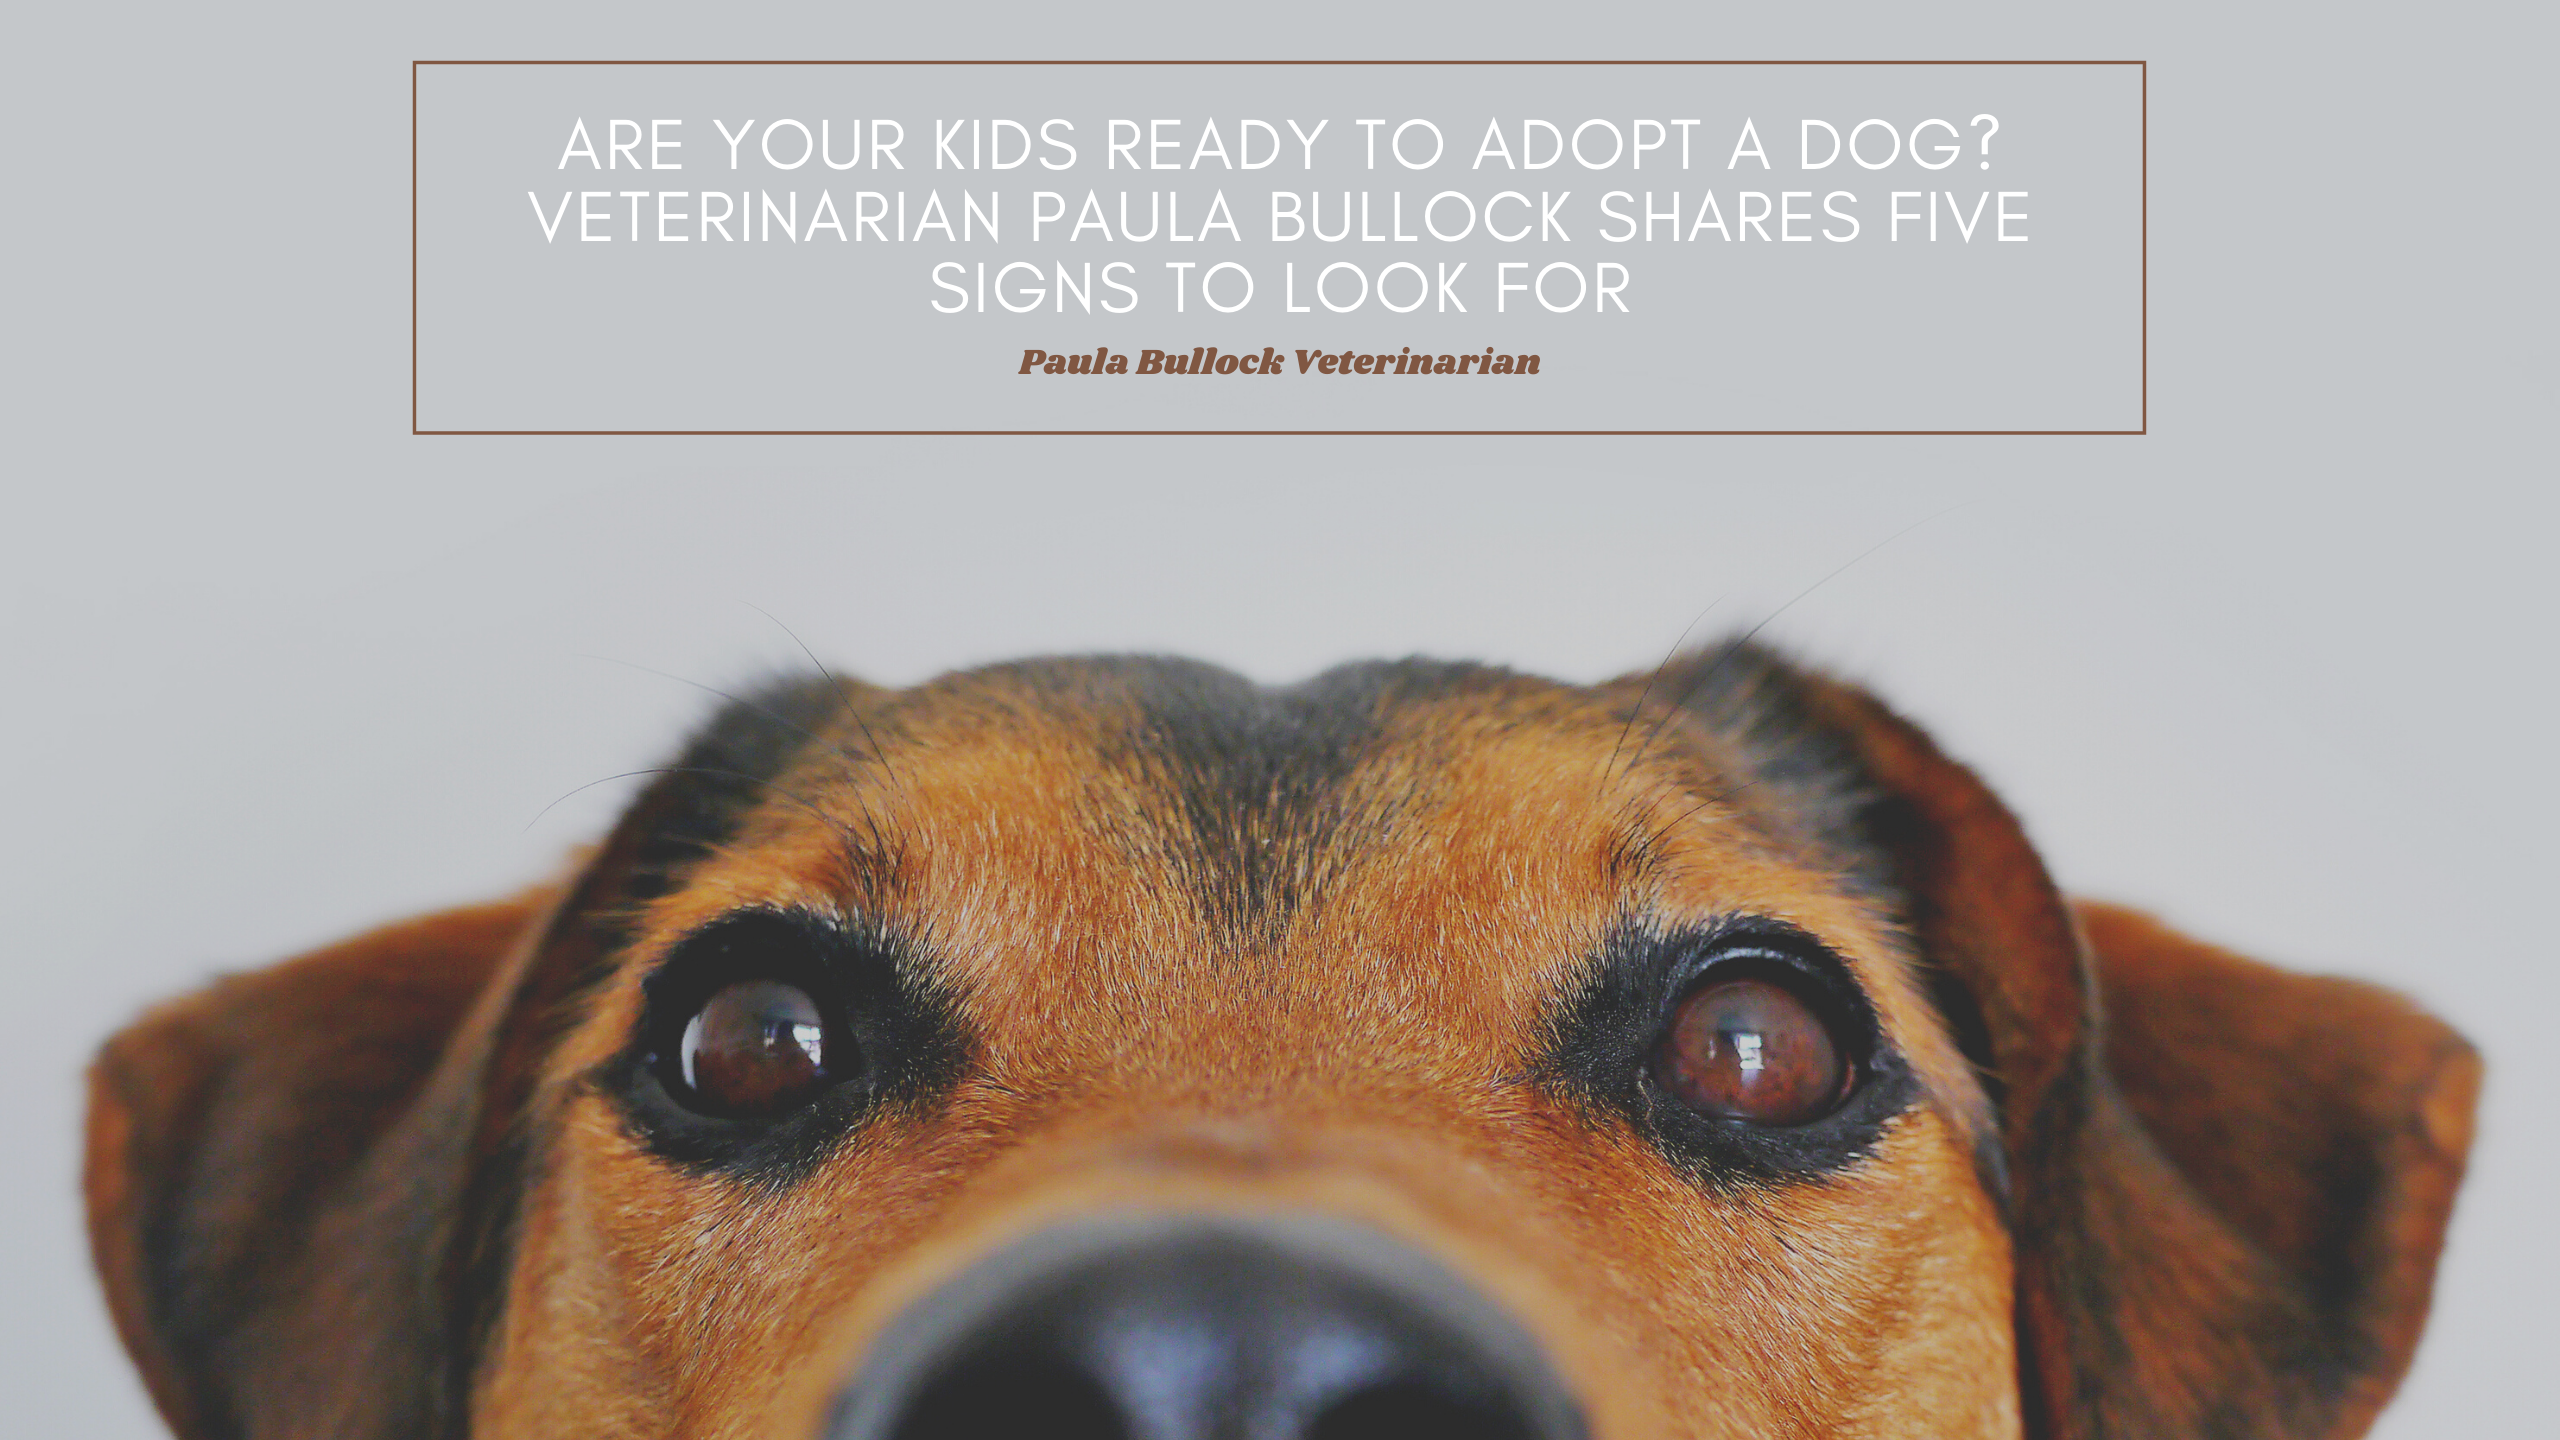 Are Your Kids Ready To Adopt A Dog? Veterinarian Paula Bullock Shares Five Signs To Look For